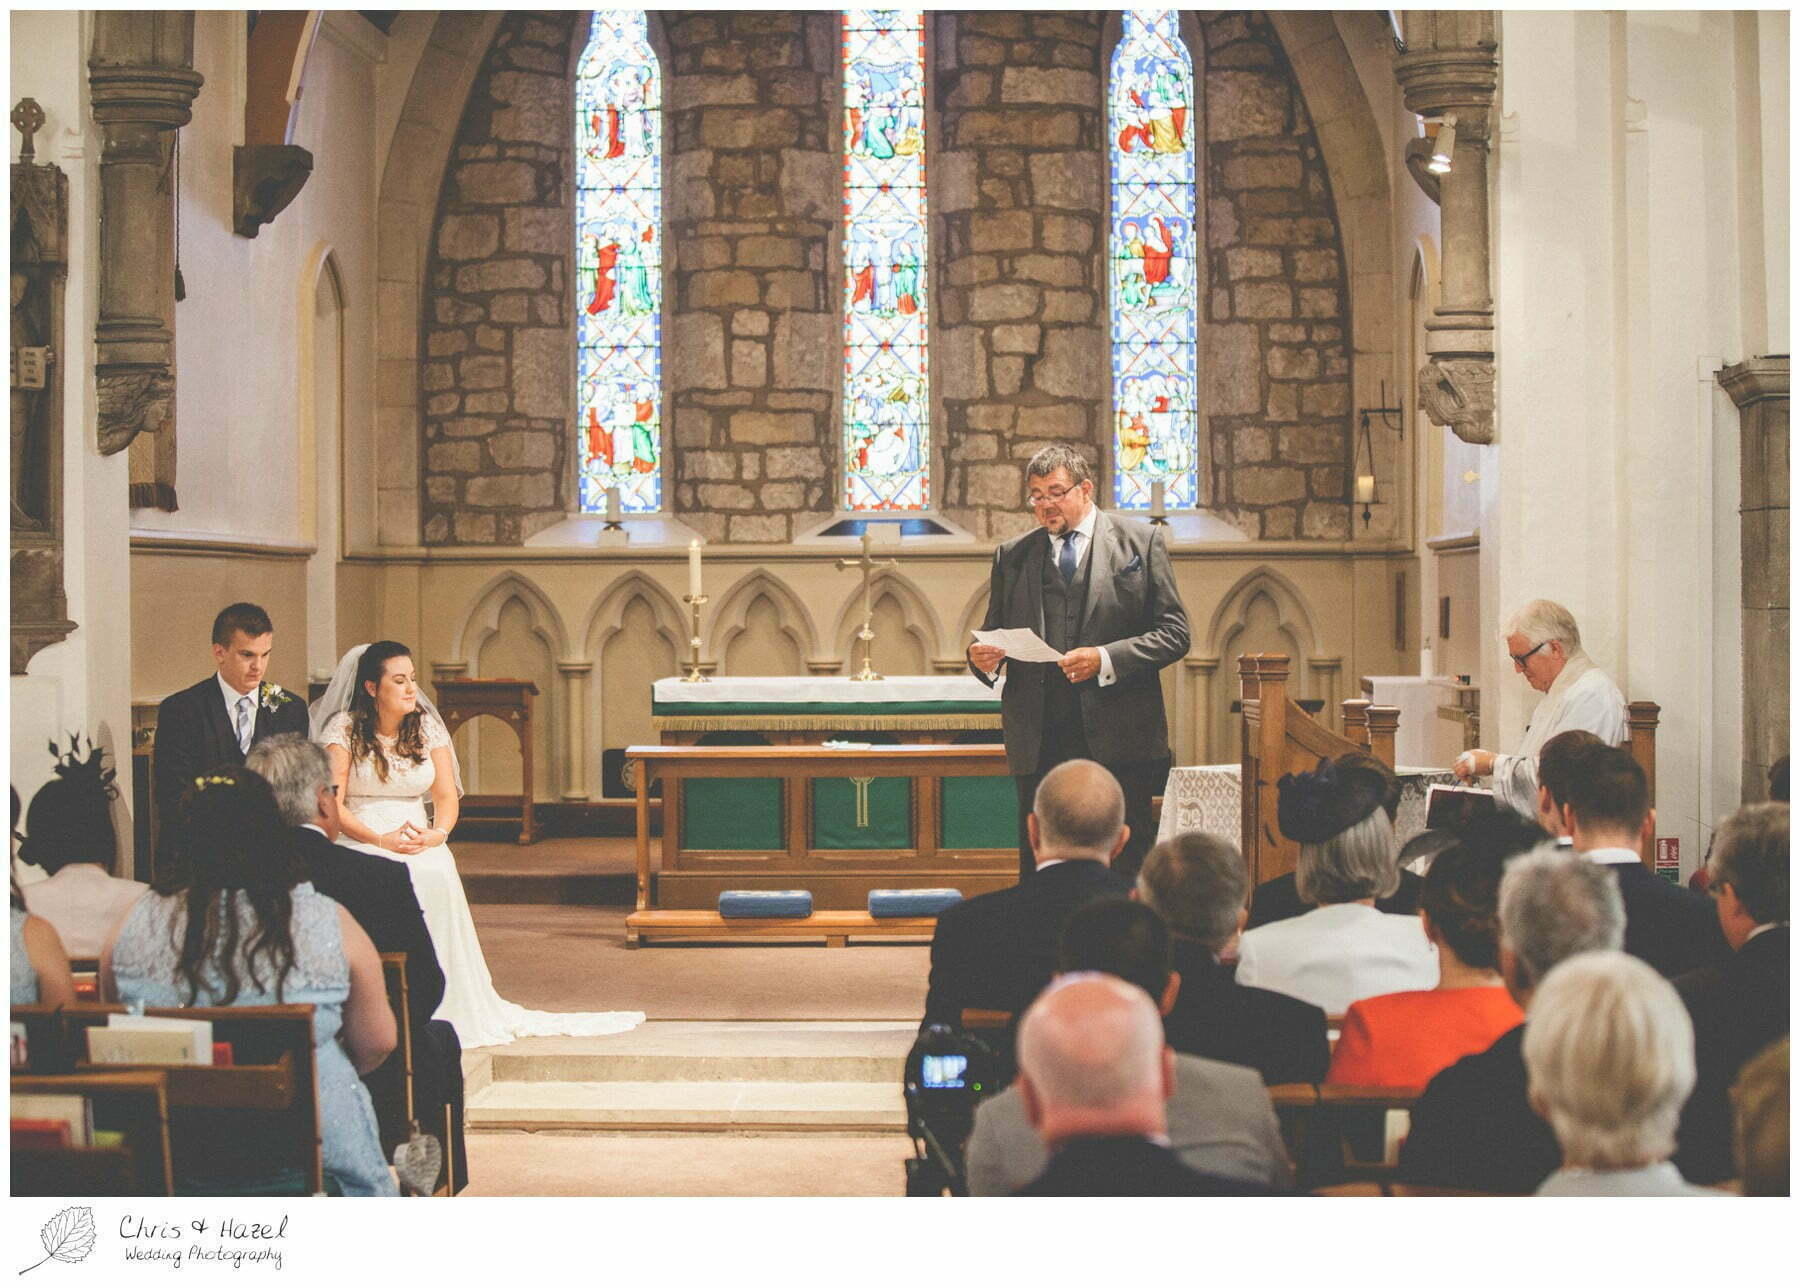 guest reading at altar, st marys church, wedding, south milford Wedding Photographer, the engine shed, Wedding Photography wetherby, Chris and Hazel Wedding Photography, stevie pollard, stevie standerline, paul standerline,